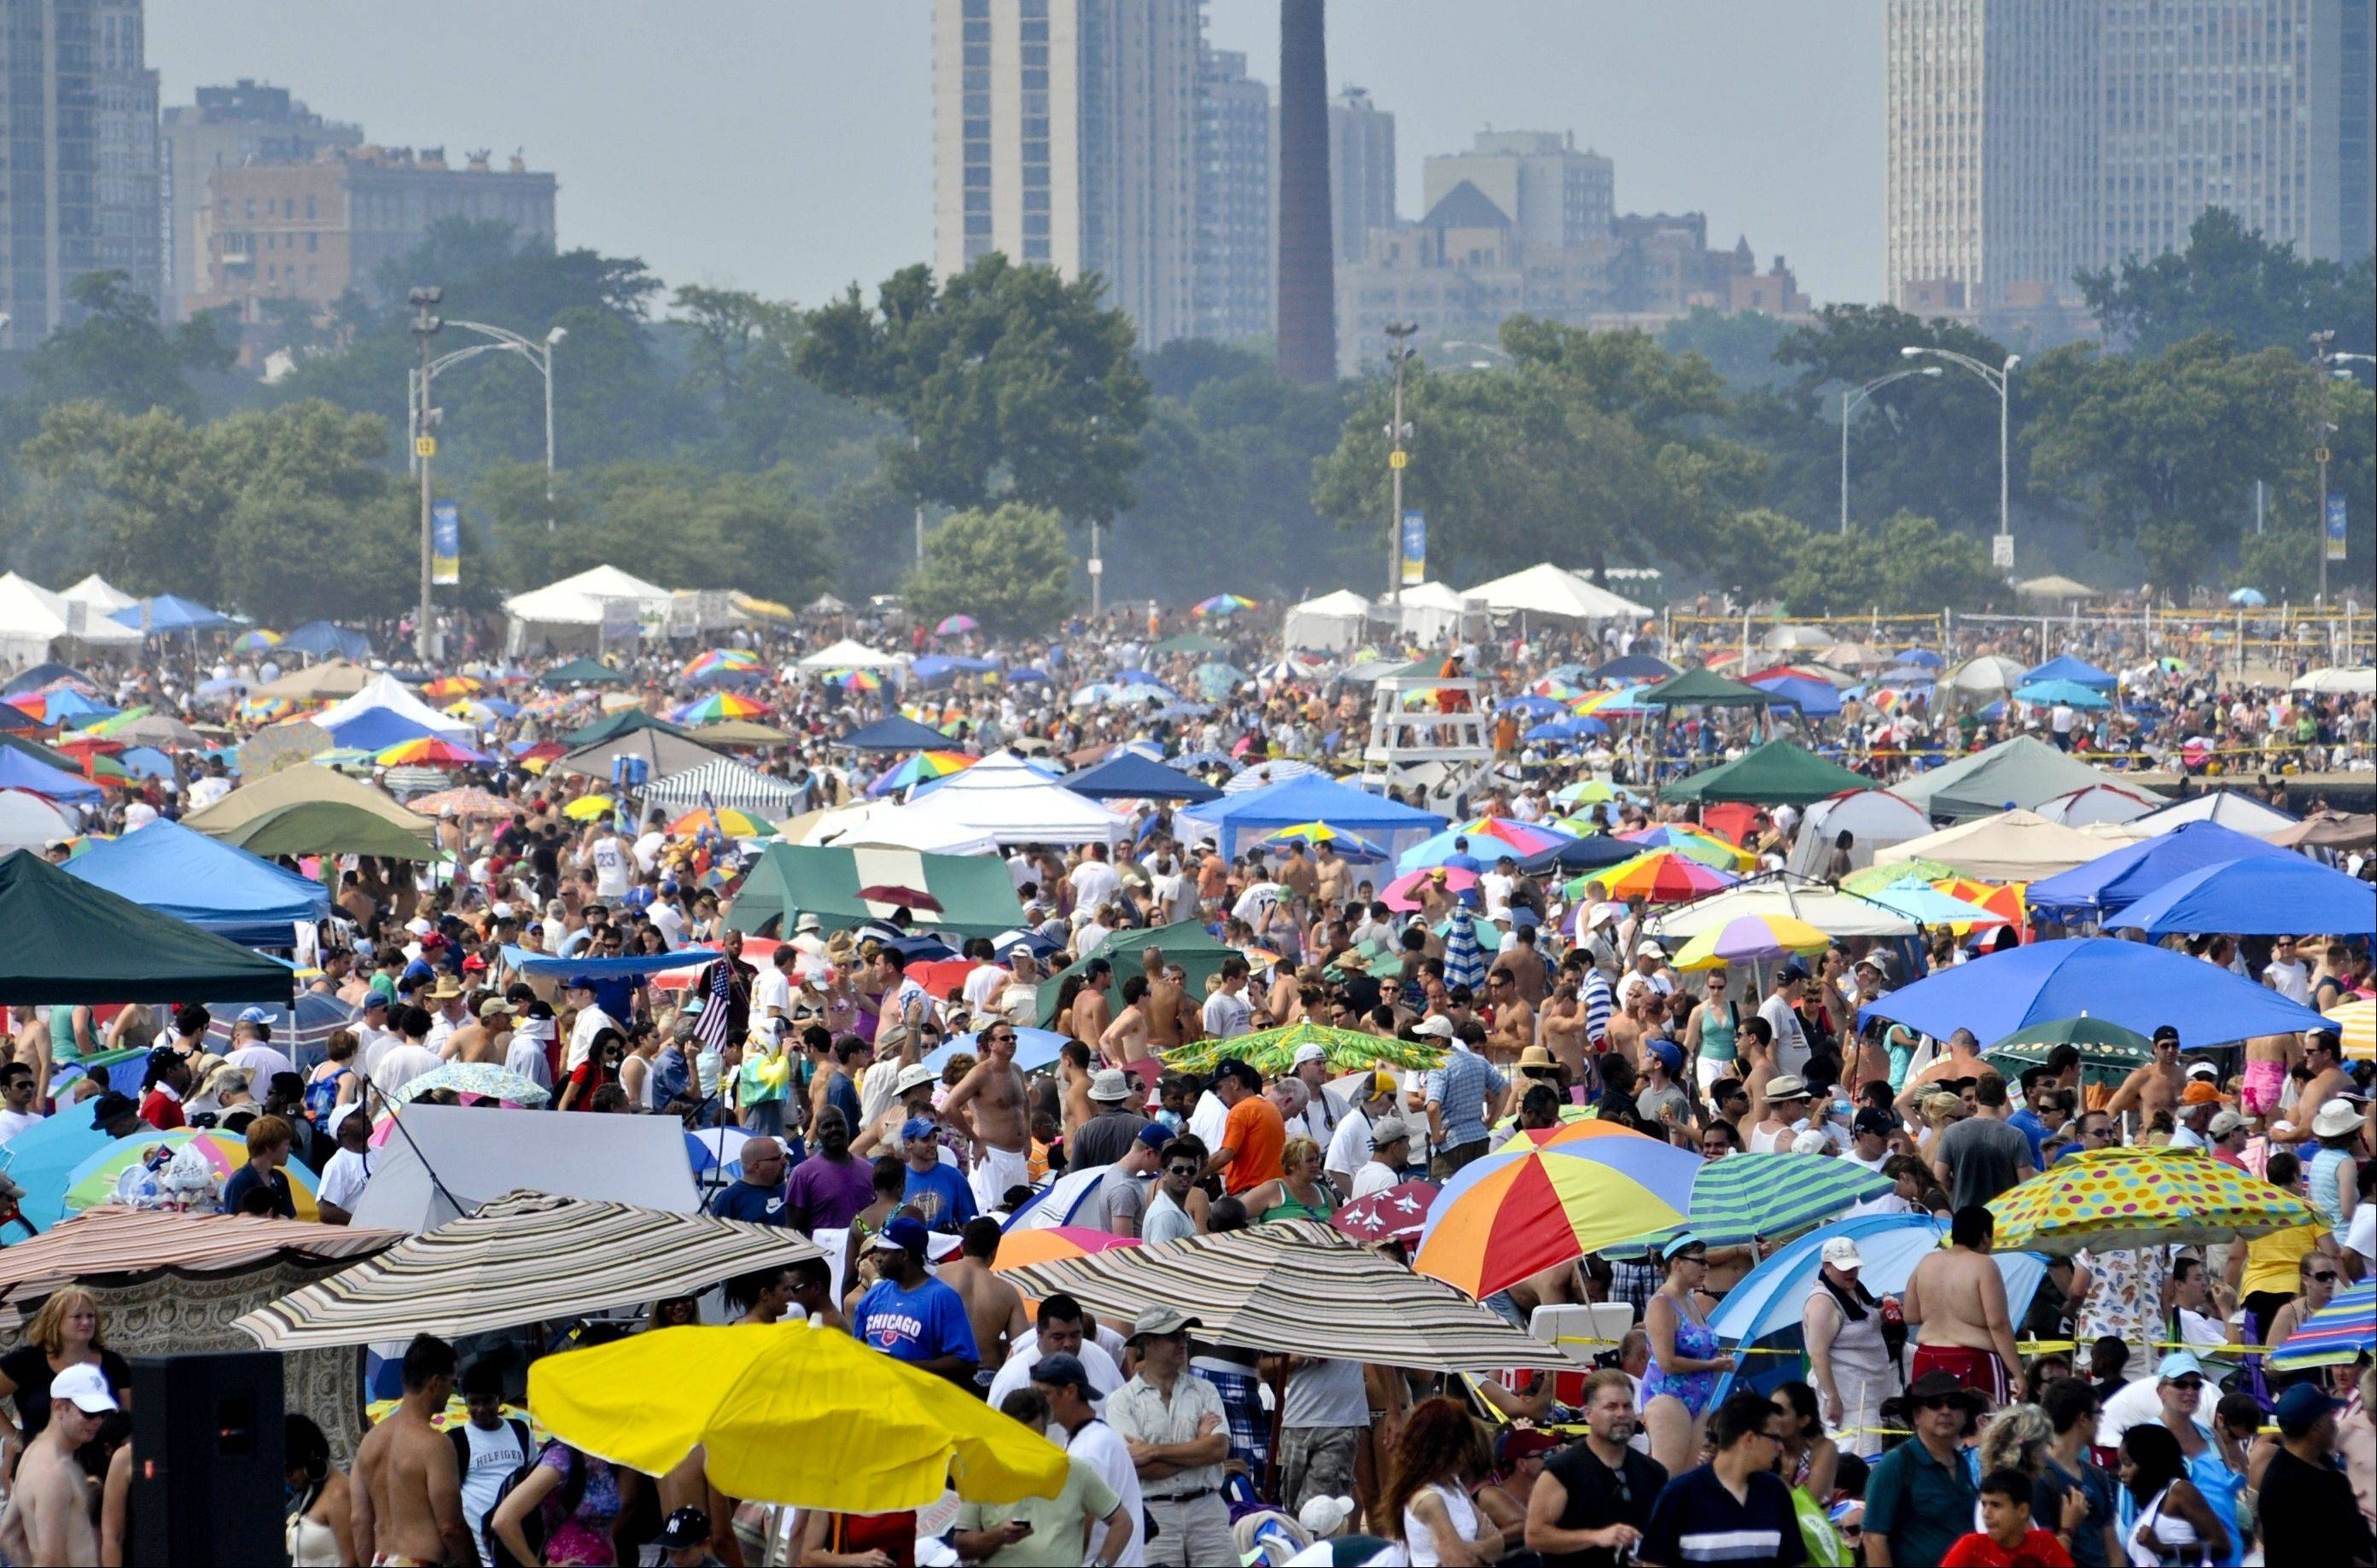 The Chicago Air & Water show draws up to 2 million people to the lake each summer.